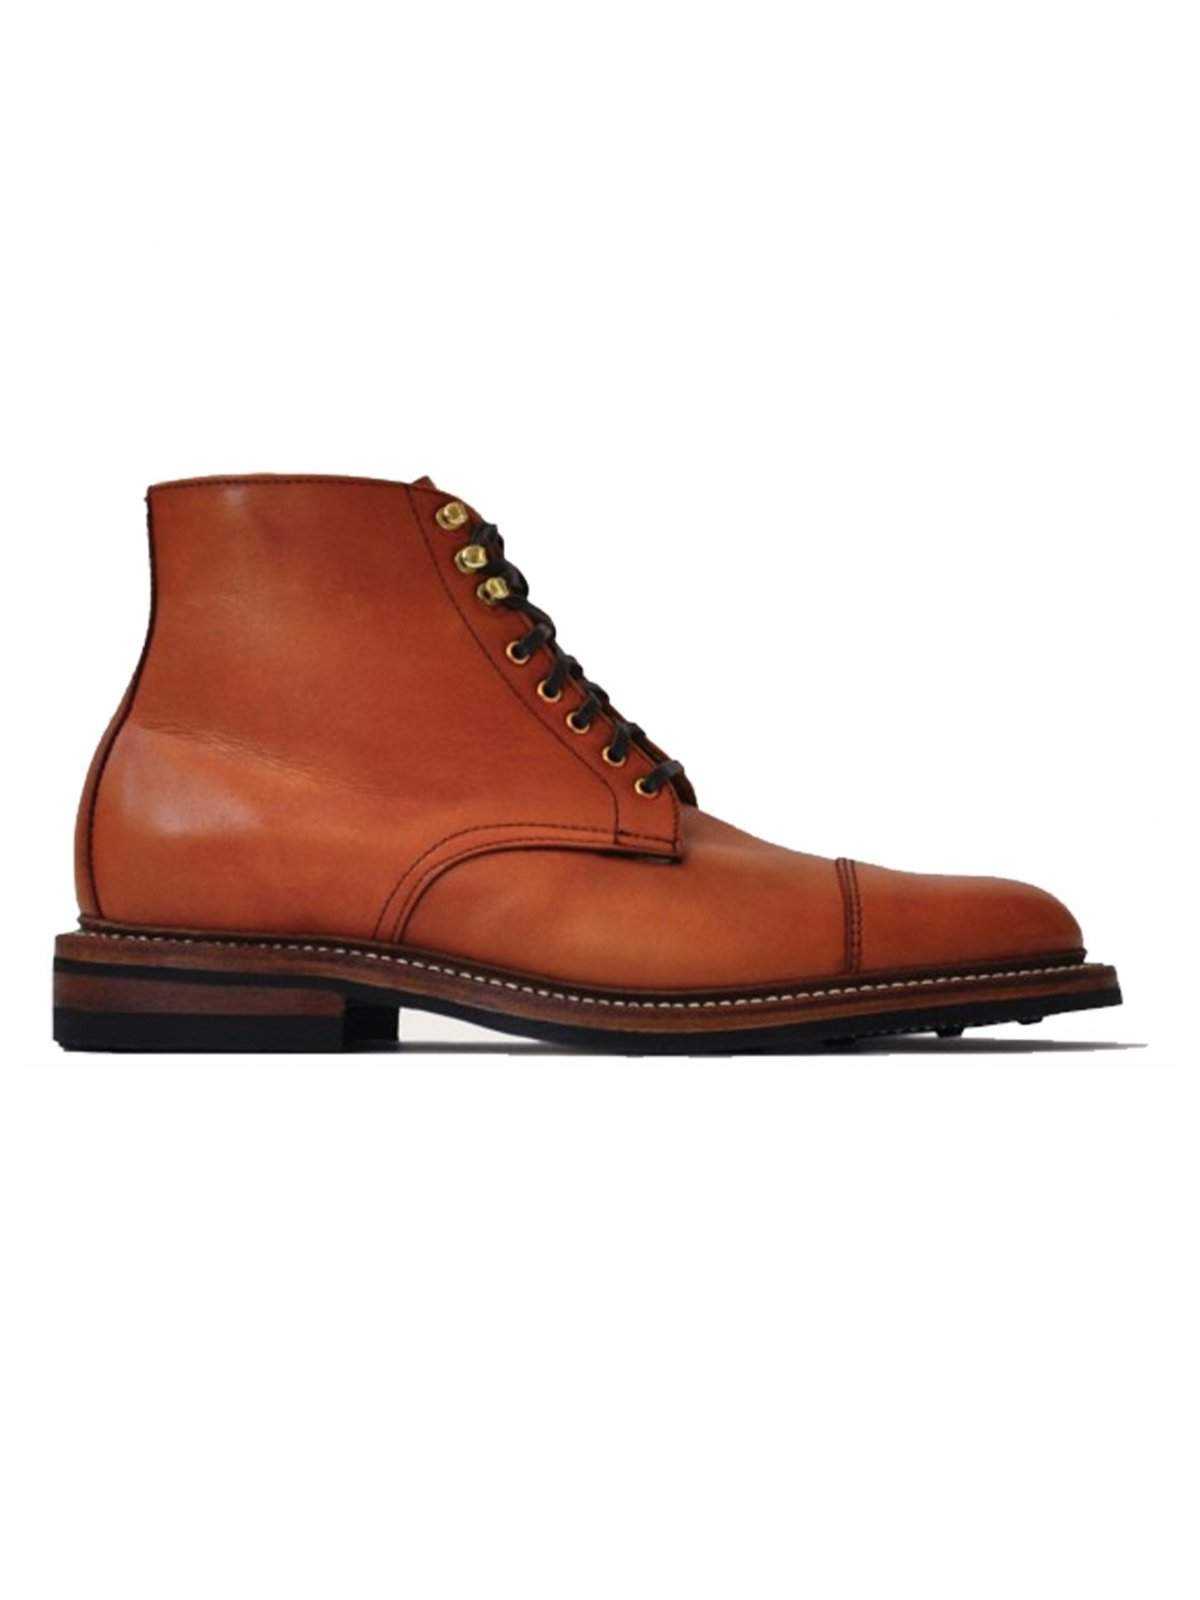 Oakstreet Bootmakers Bourbon Calf Dainite Lakeshore Boot - MORE by Morello Indonesia